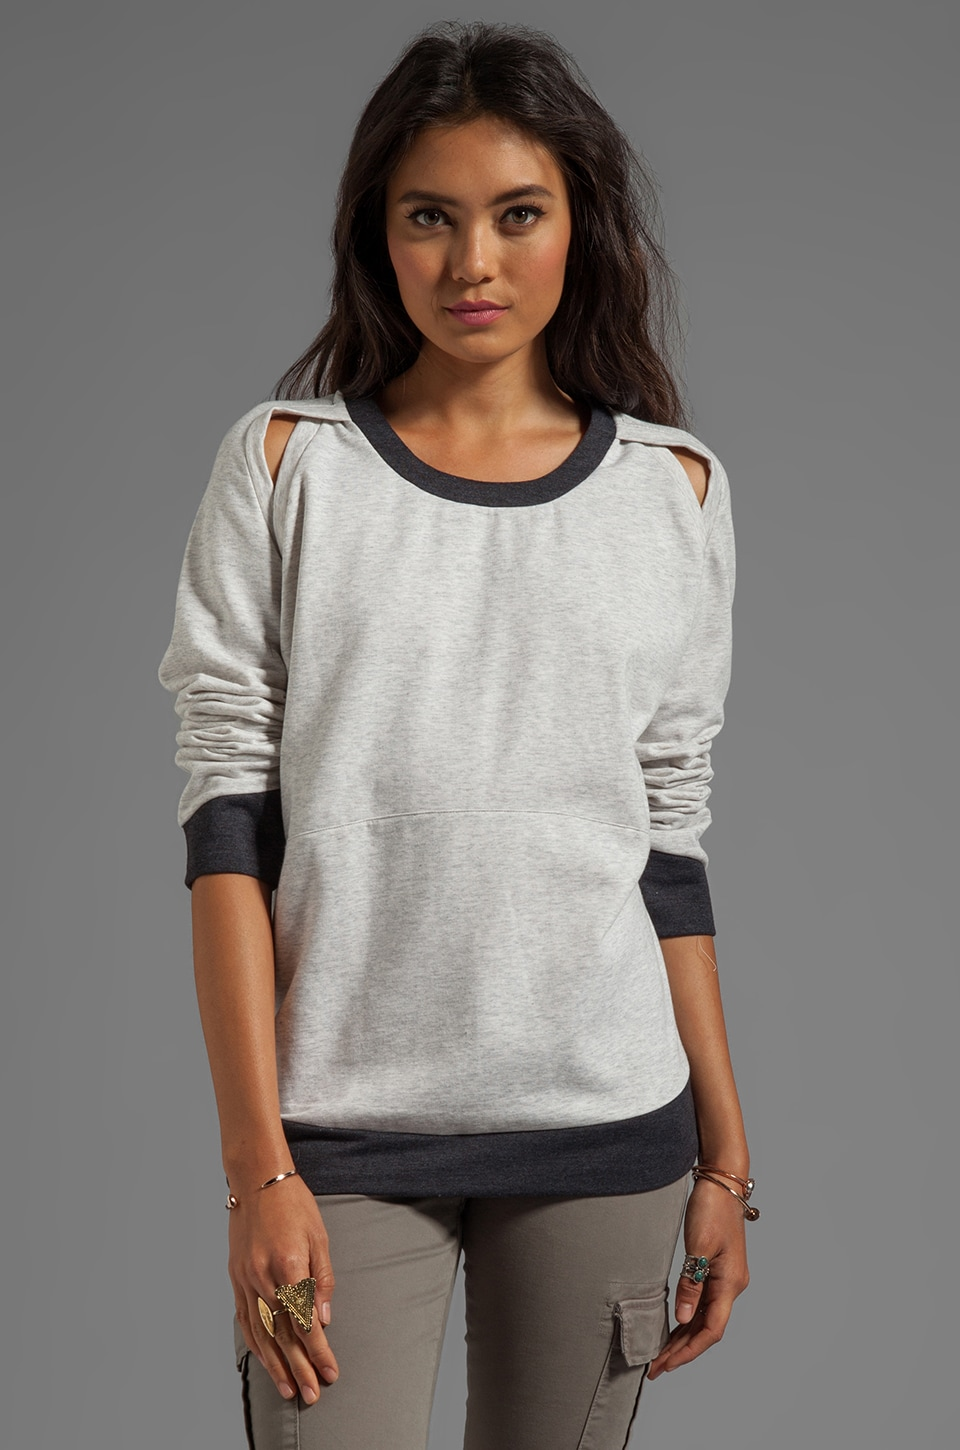 TOWNSEN Harlow Pullover in Heather Grey